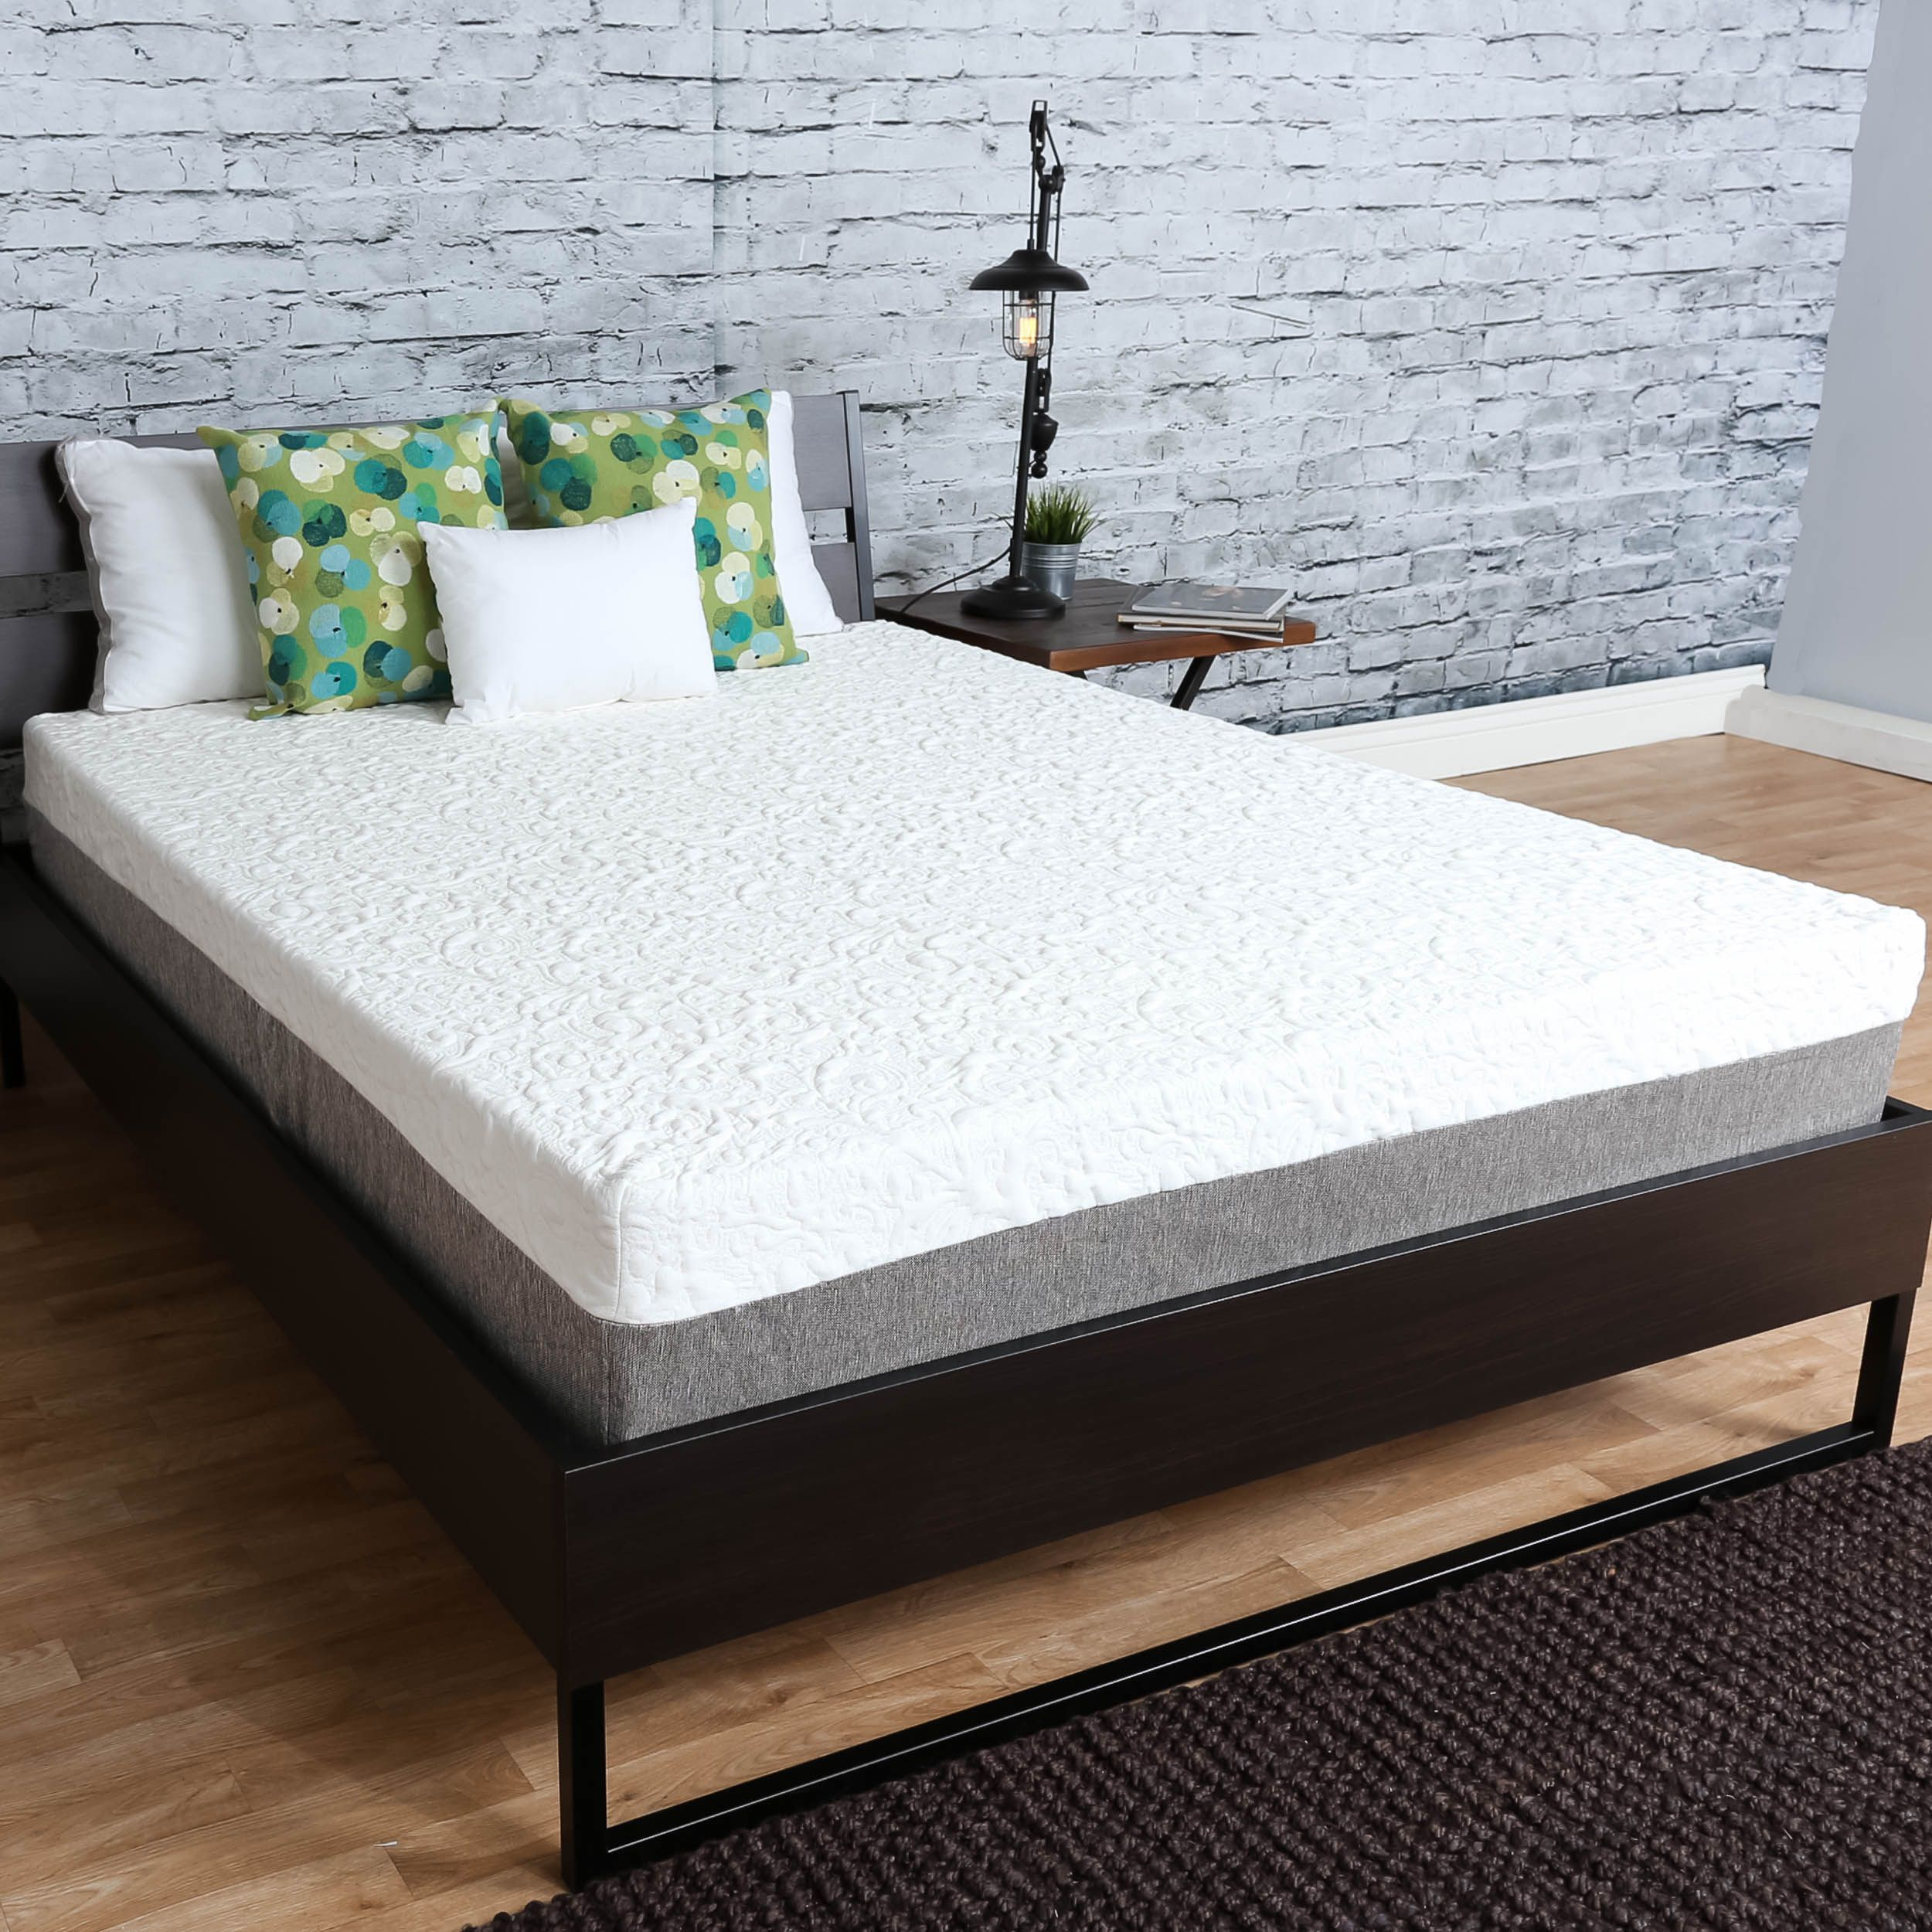 Premier Sleep Products Medium Firm 10 Inch Twin Size Graphite Gel Memory Foam Mattress In 2019 Mattress Memory Foam Bed Slats